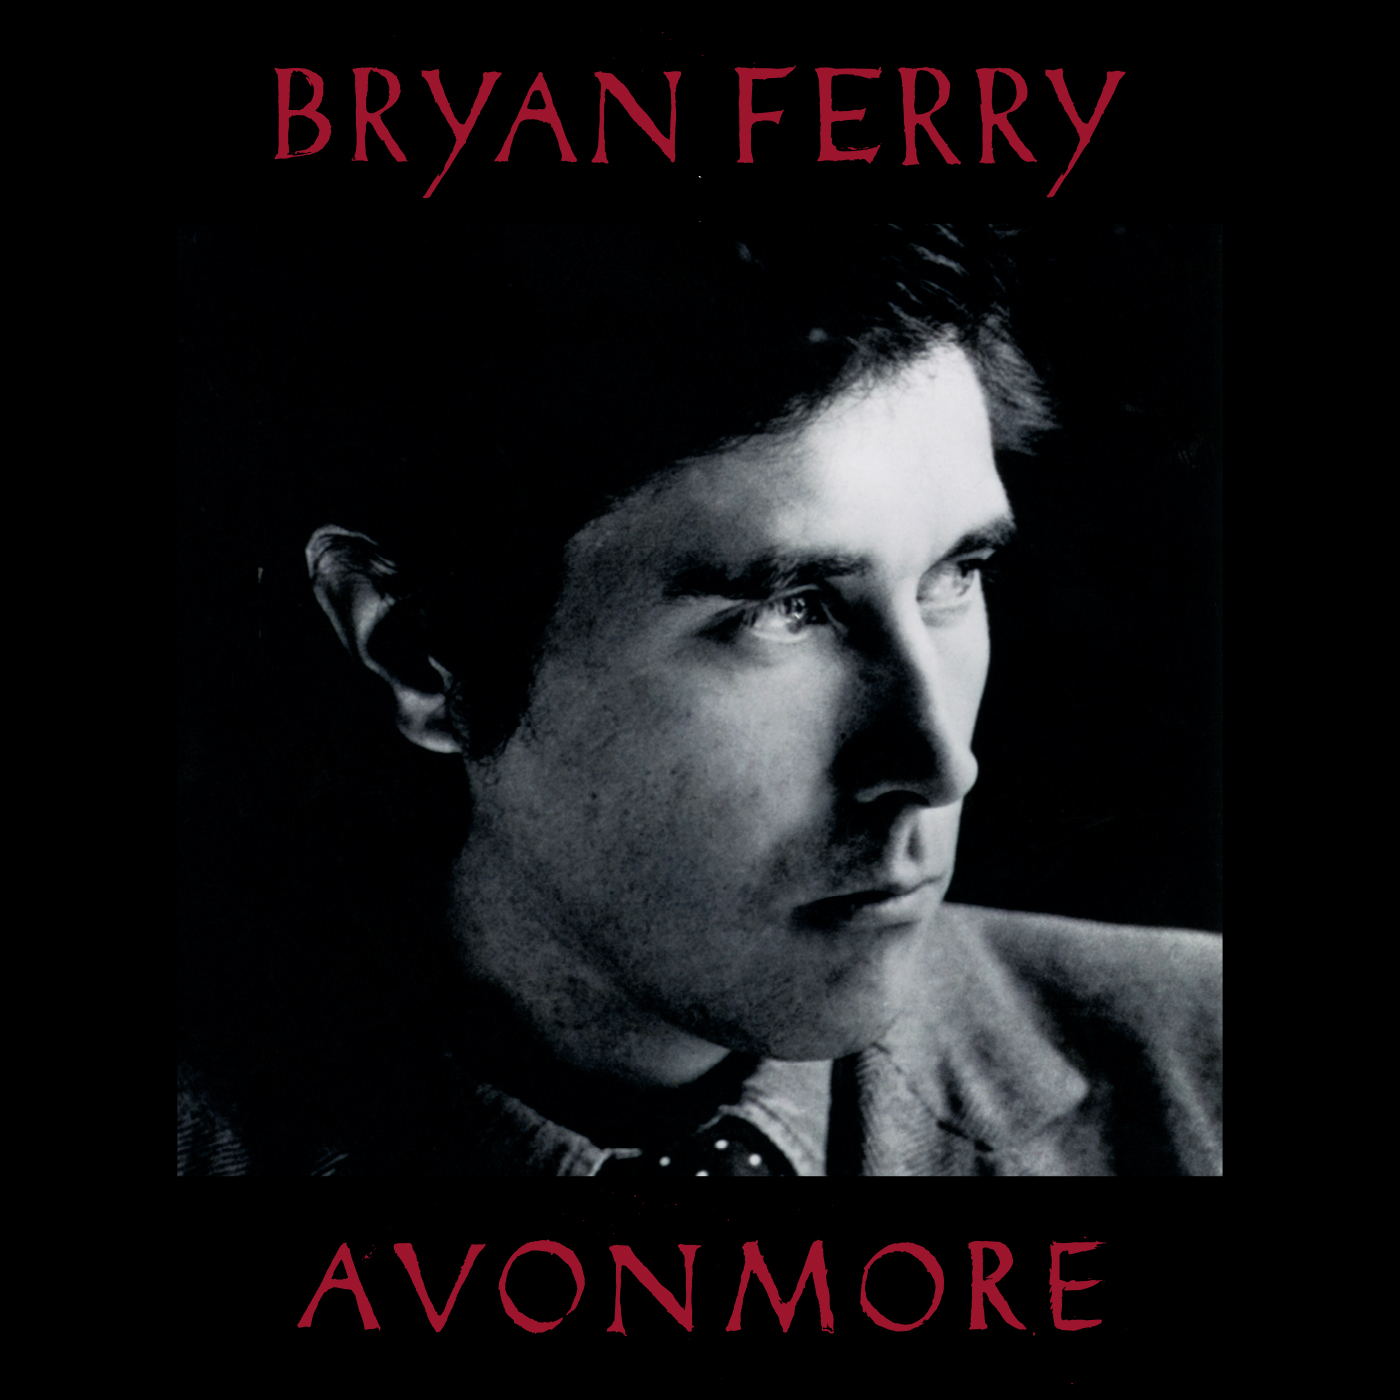 avonmore christian singles Mix - bryan ferry - driving me wild [official audio] youtube bryan ferry - driving me wild [johnson somerset remix] - duration: 8:33 johnson somerset 40,534 views.